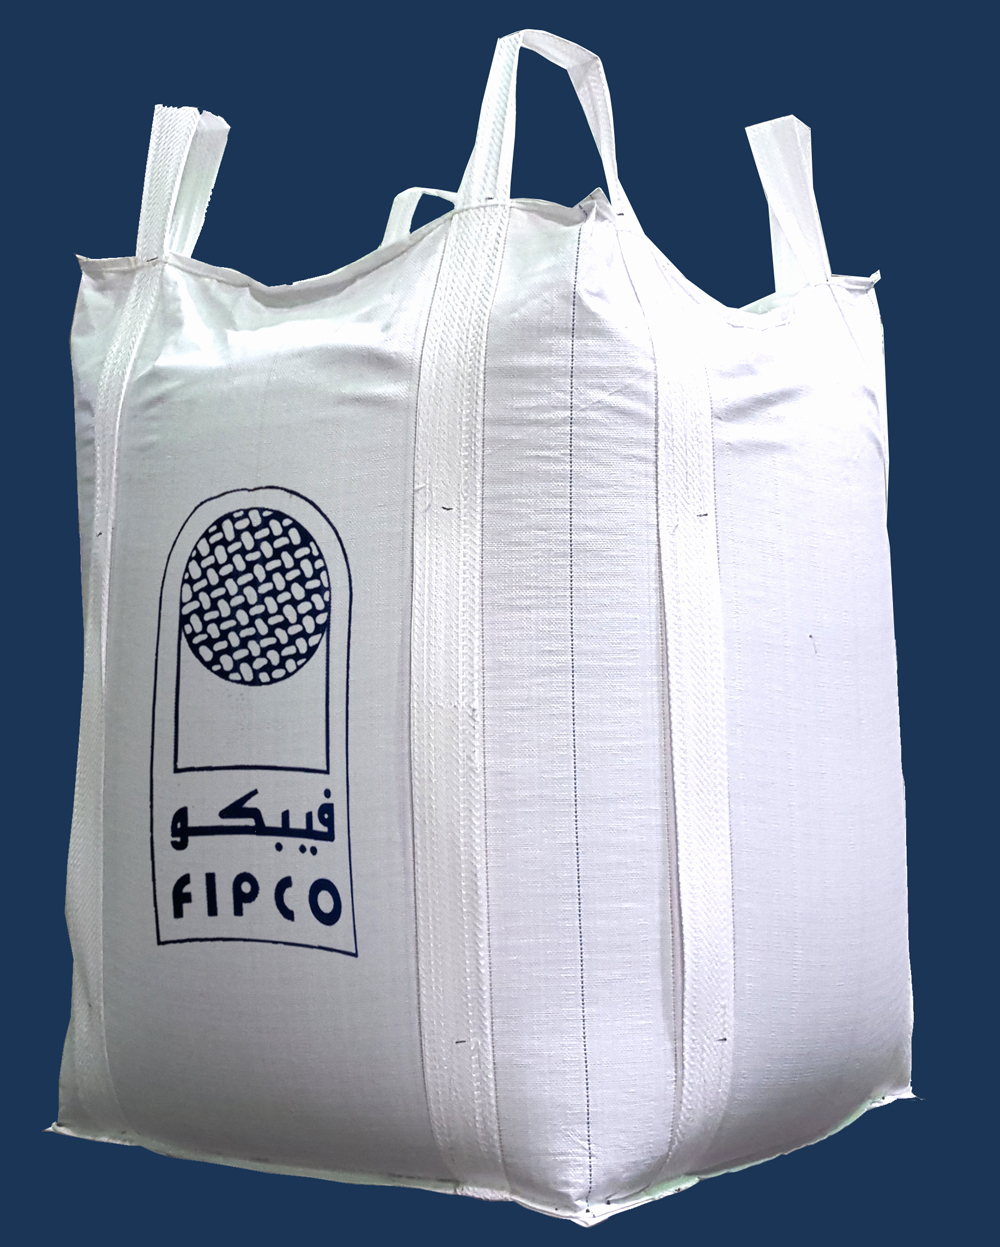 full loop bag, full loop jumbo bag